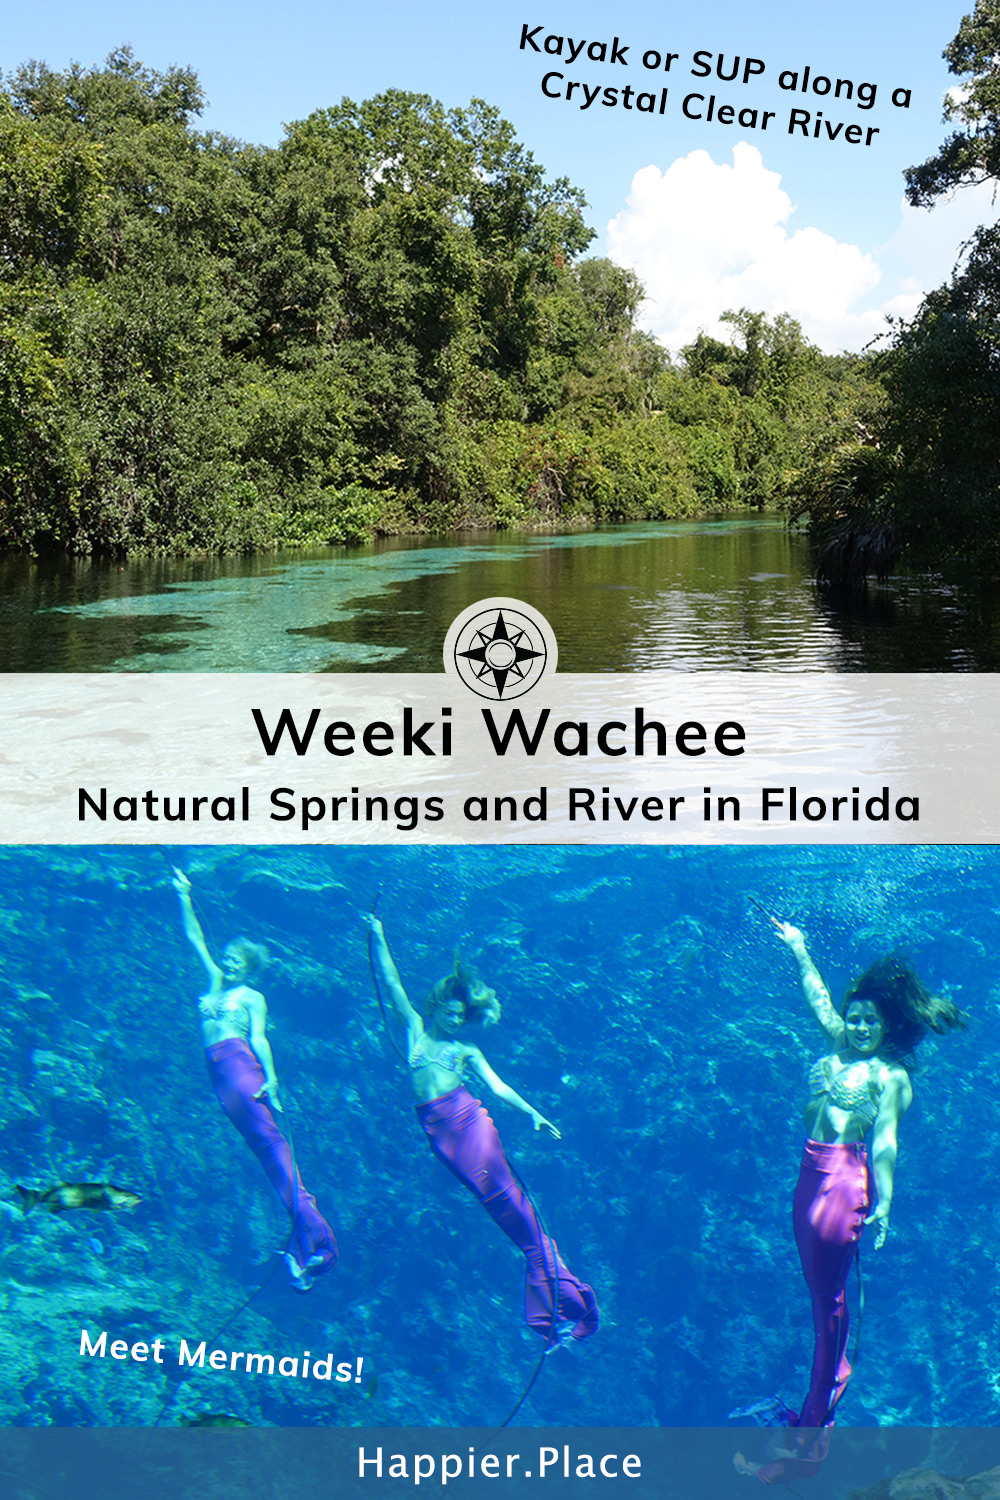 Weeki Wachee Springs River Mermaids Kayak SUP